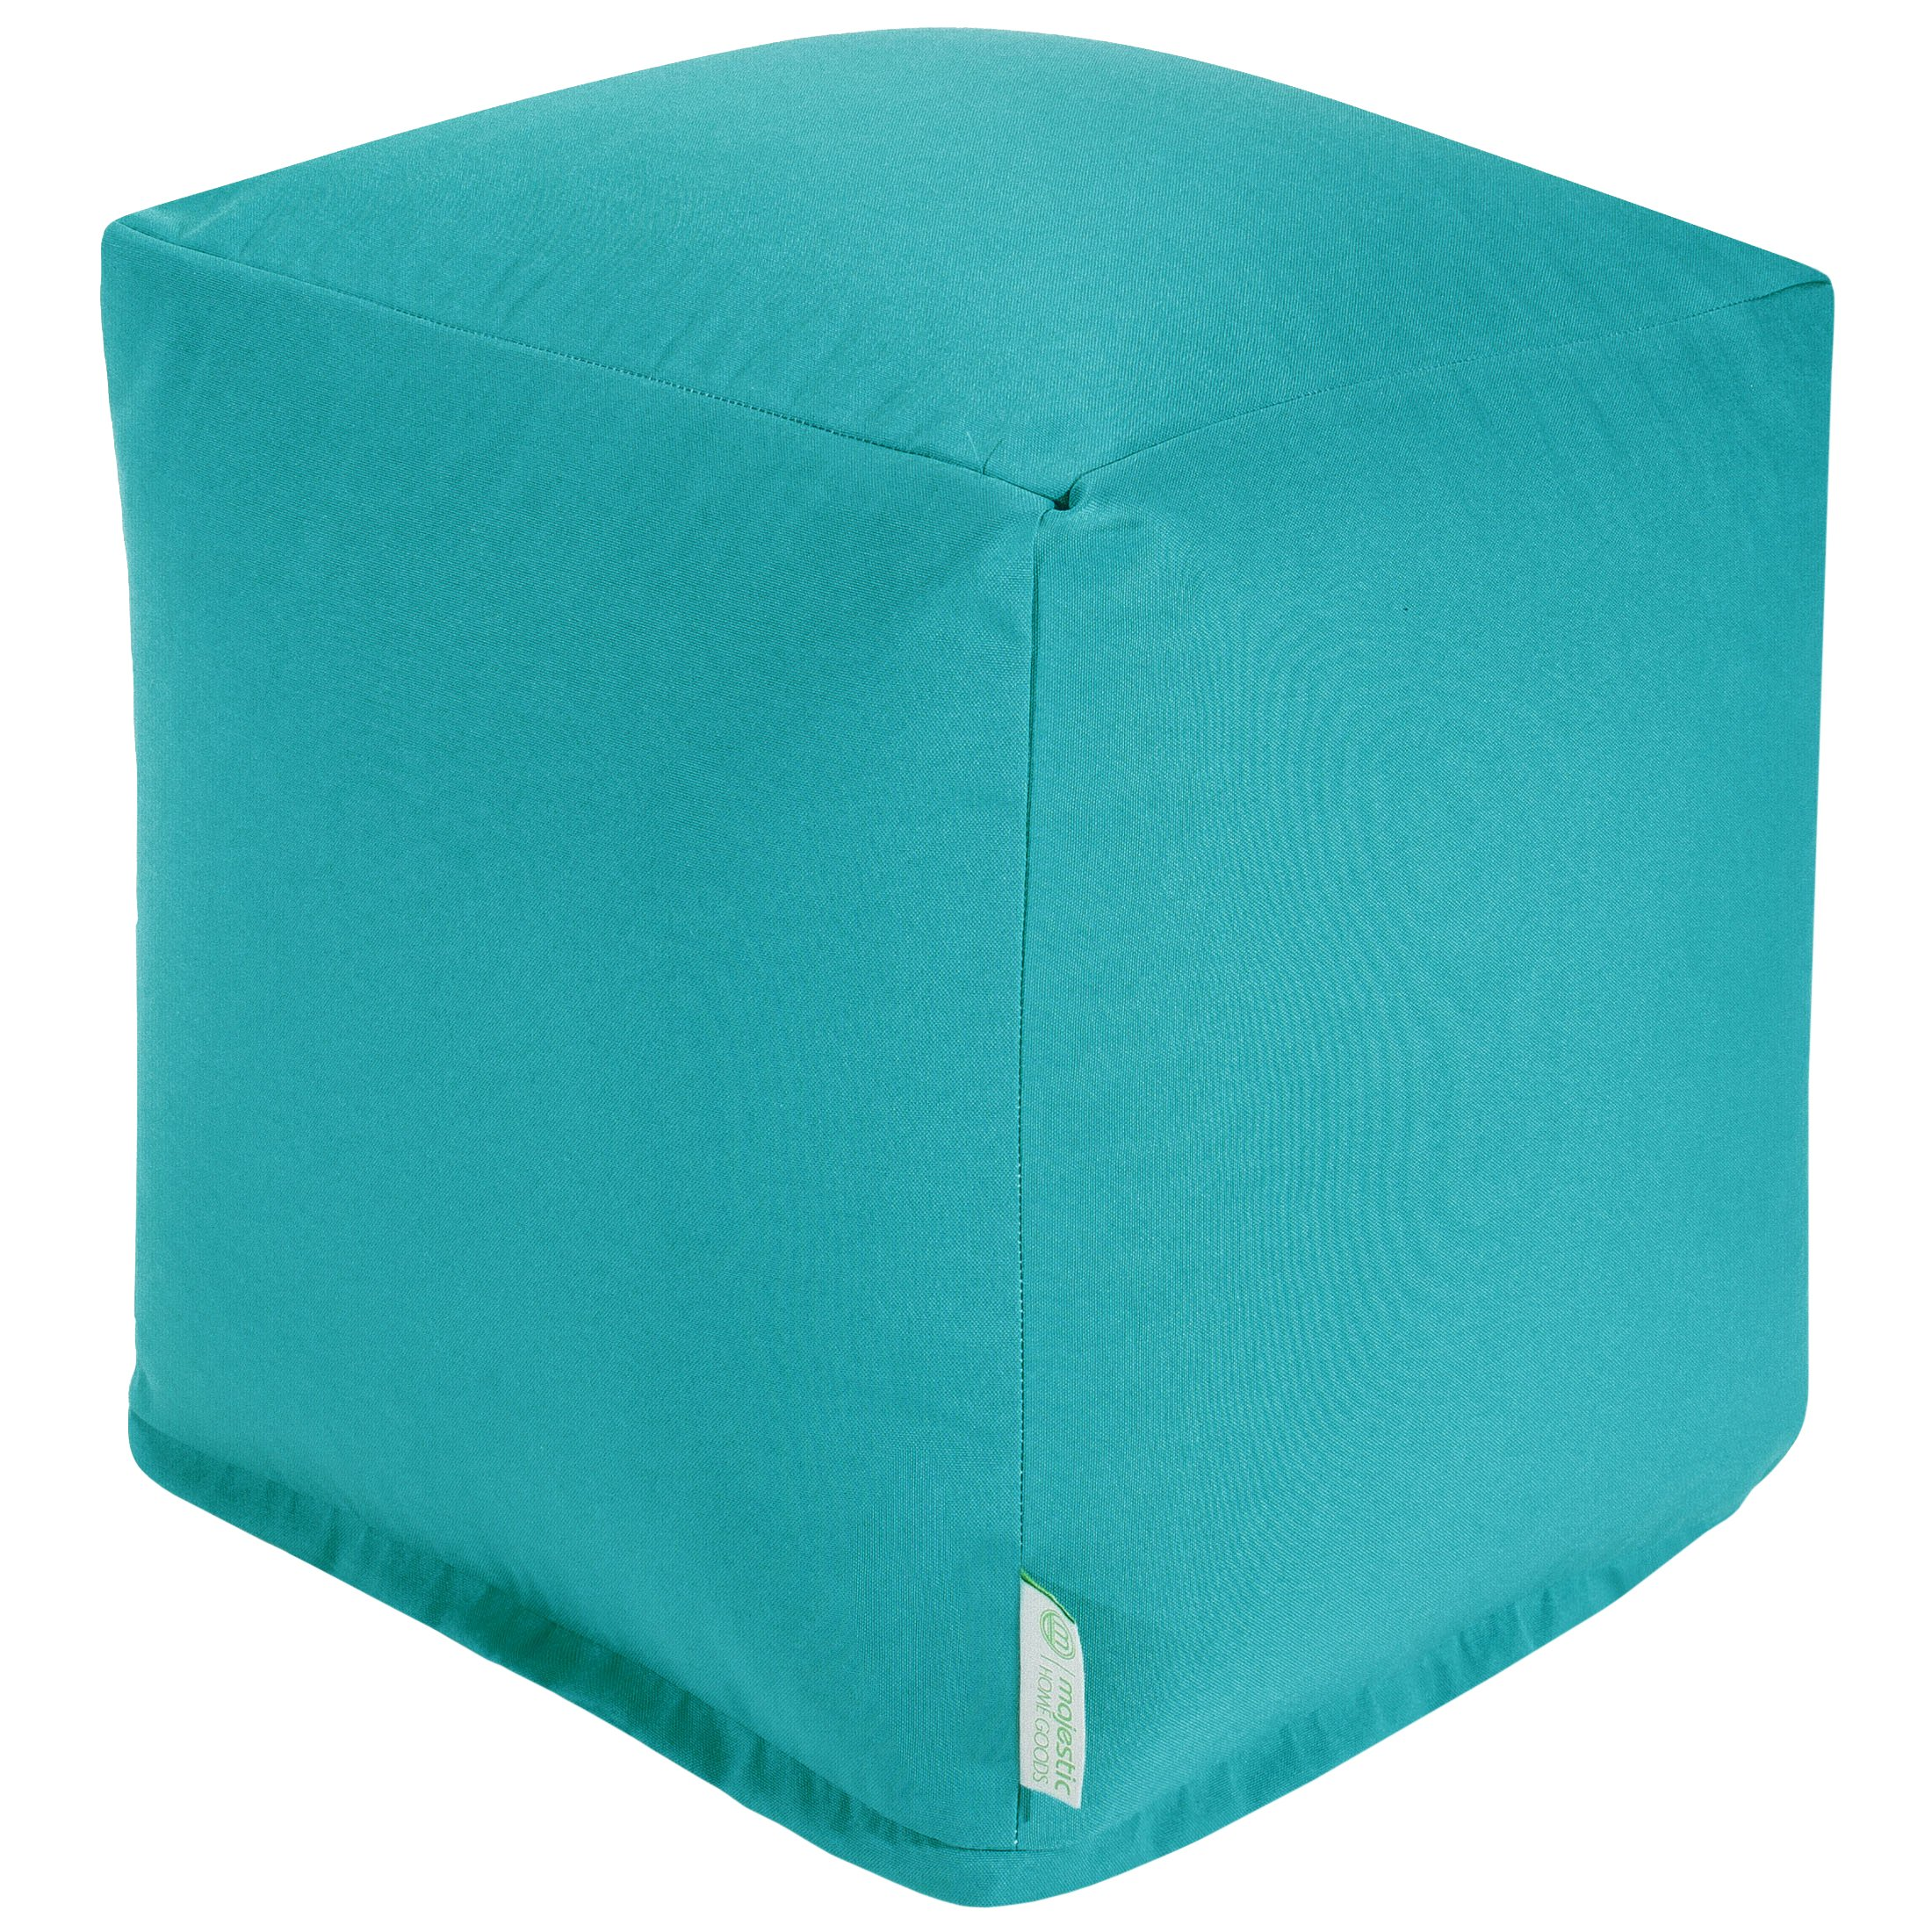 Majestic Home Goods Teal Solid Indoor/Outdoor Bean Bag Ottoman Pouf Cube 17'' L x 17'' W x 17'' H by Majestic Home Goods